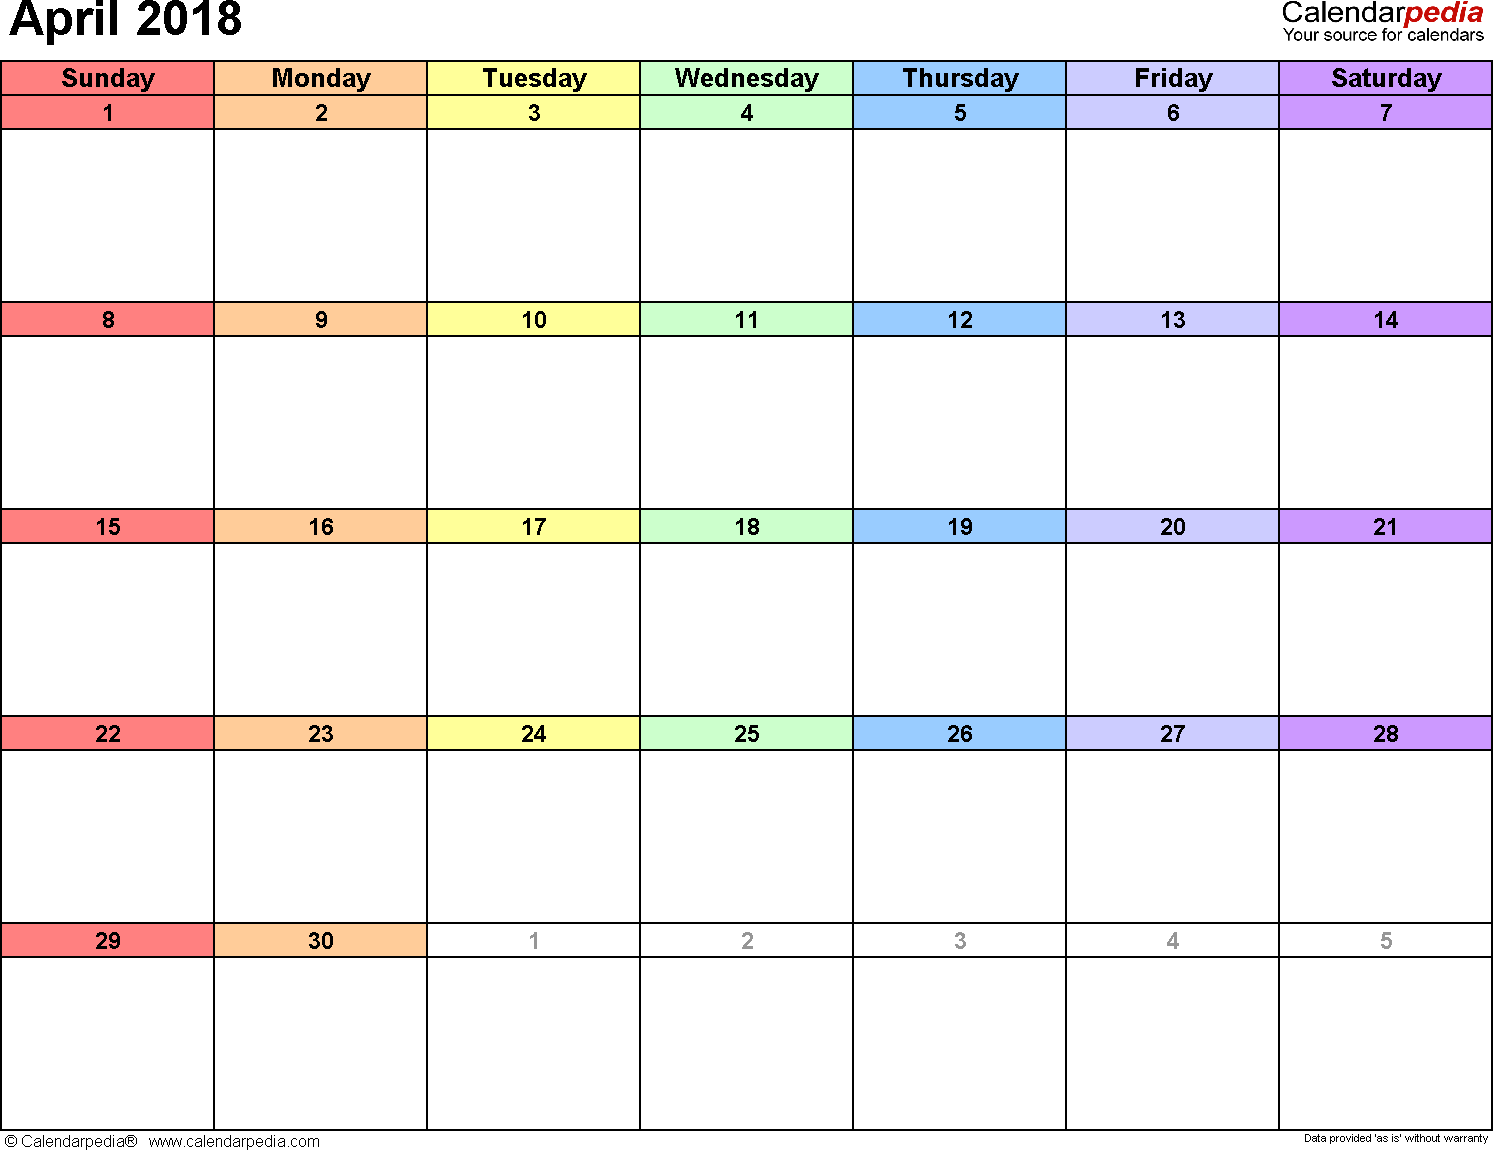 Calendar Template April 2018 : April calendars for word excel pdf